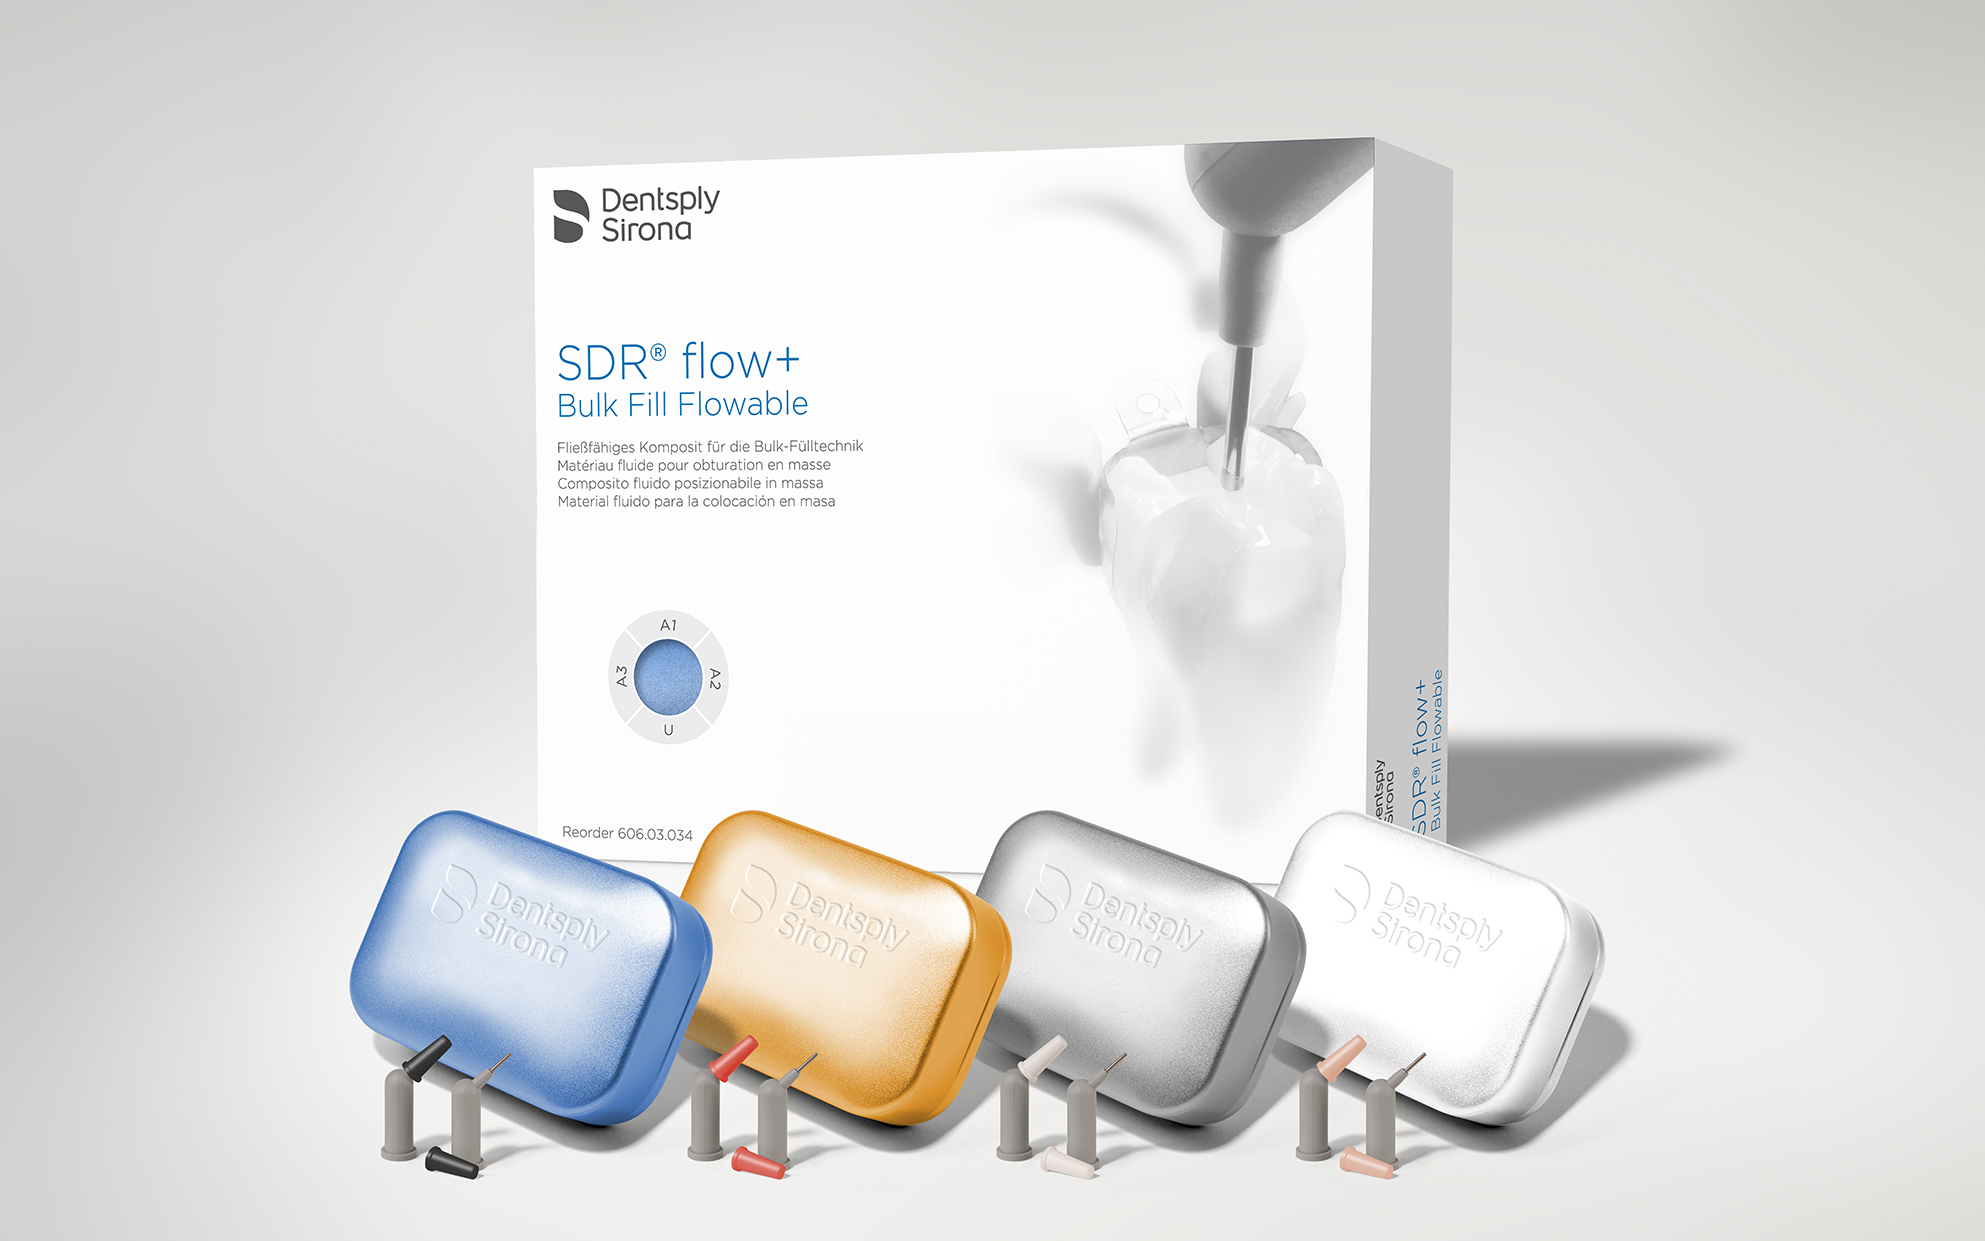 Dentsply Sirona Introduces Sdr Flow Bulk Fill Flowable